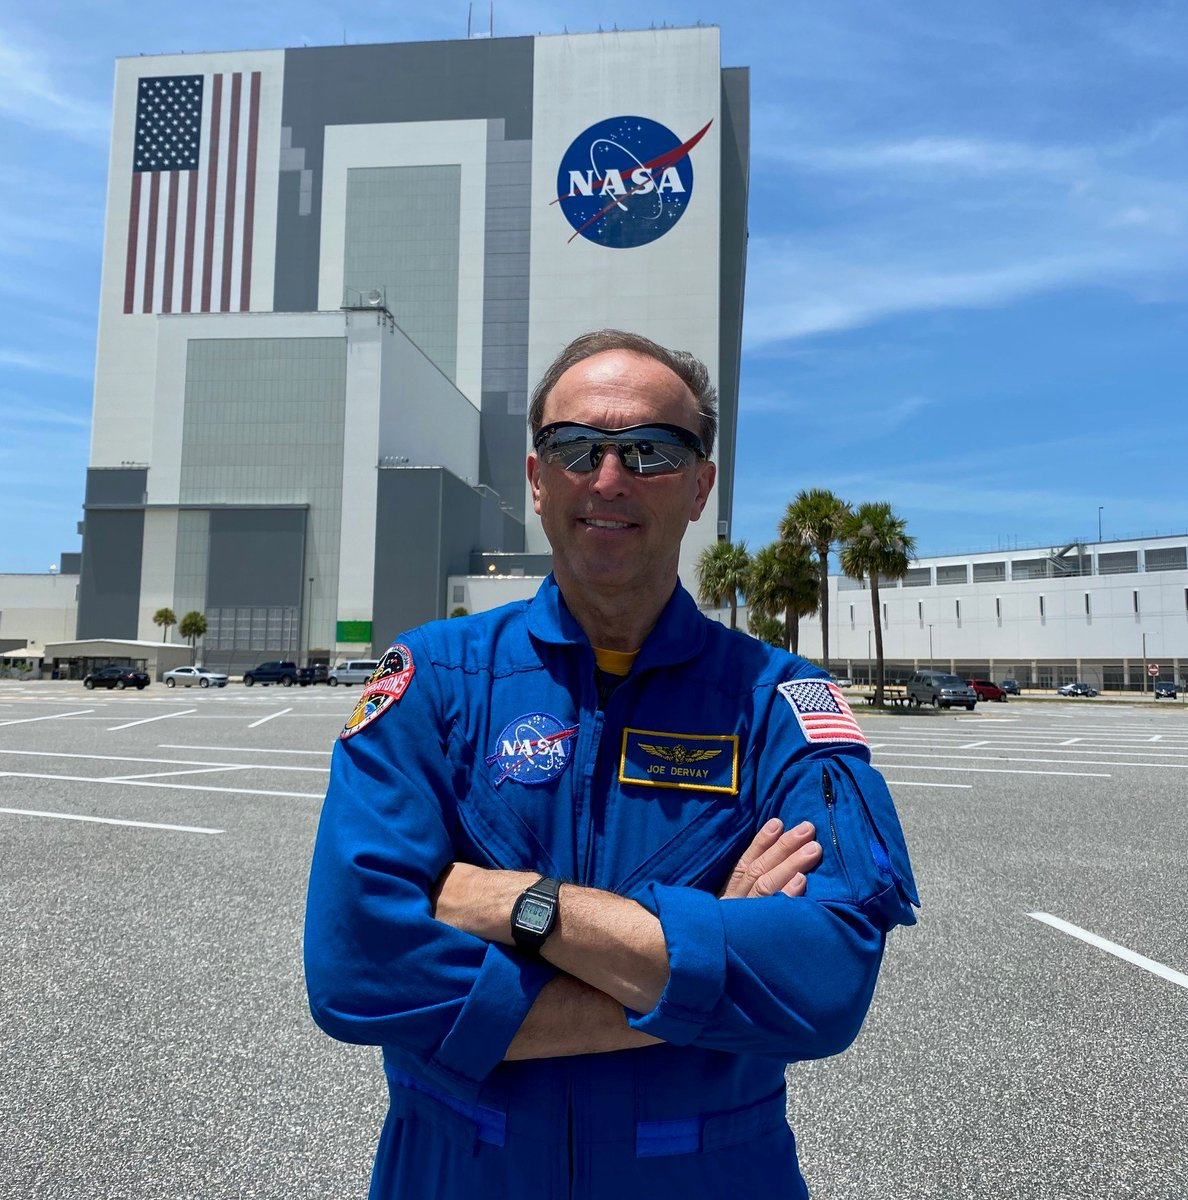 Keep an eye out for brother Joe Dervay (Cornell '77) as he has the privilege to serve as one of two Flight Surgeons supporting the NASA - SpaceX historic mission. The launch attempt will be at 3:22 p.m. EST from NASA's Kennedy Space Center in Florida. pic.twitter.com/vqRpzE0PSA